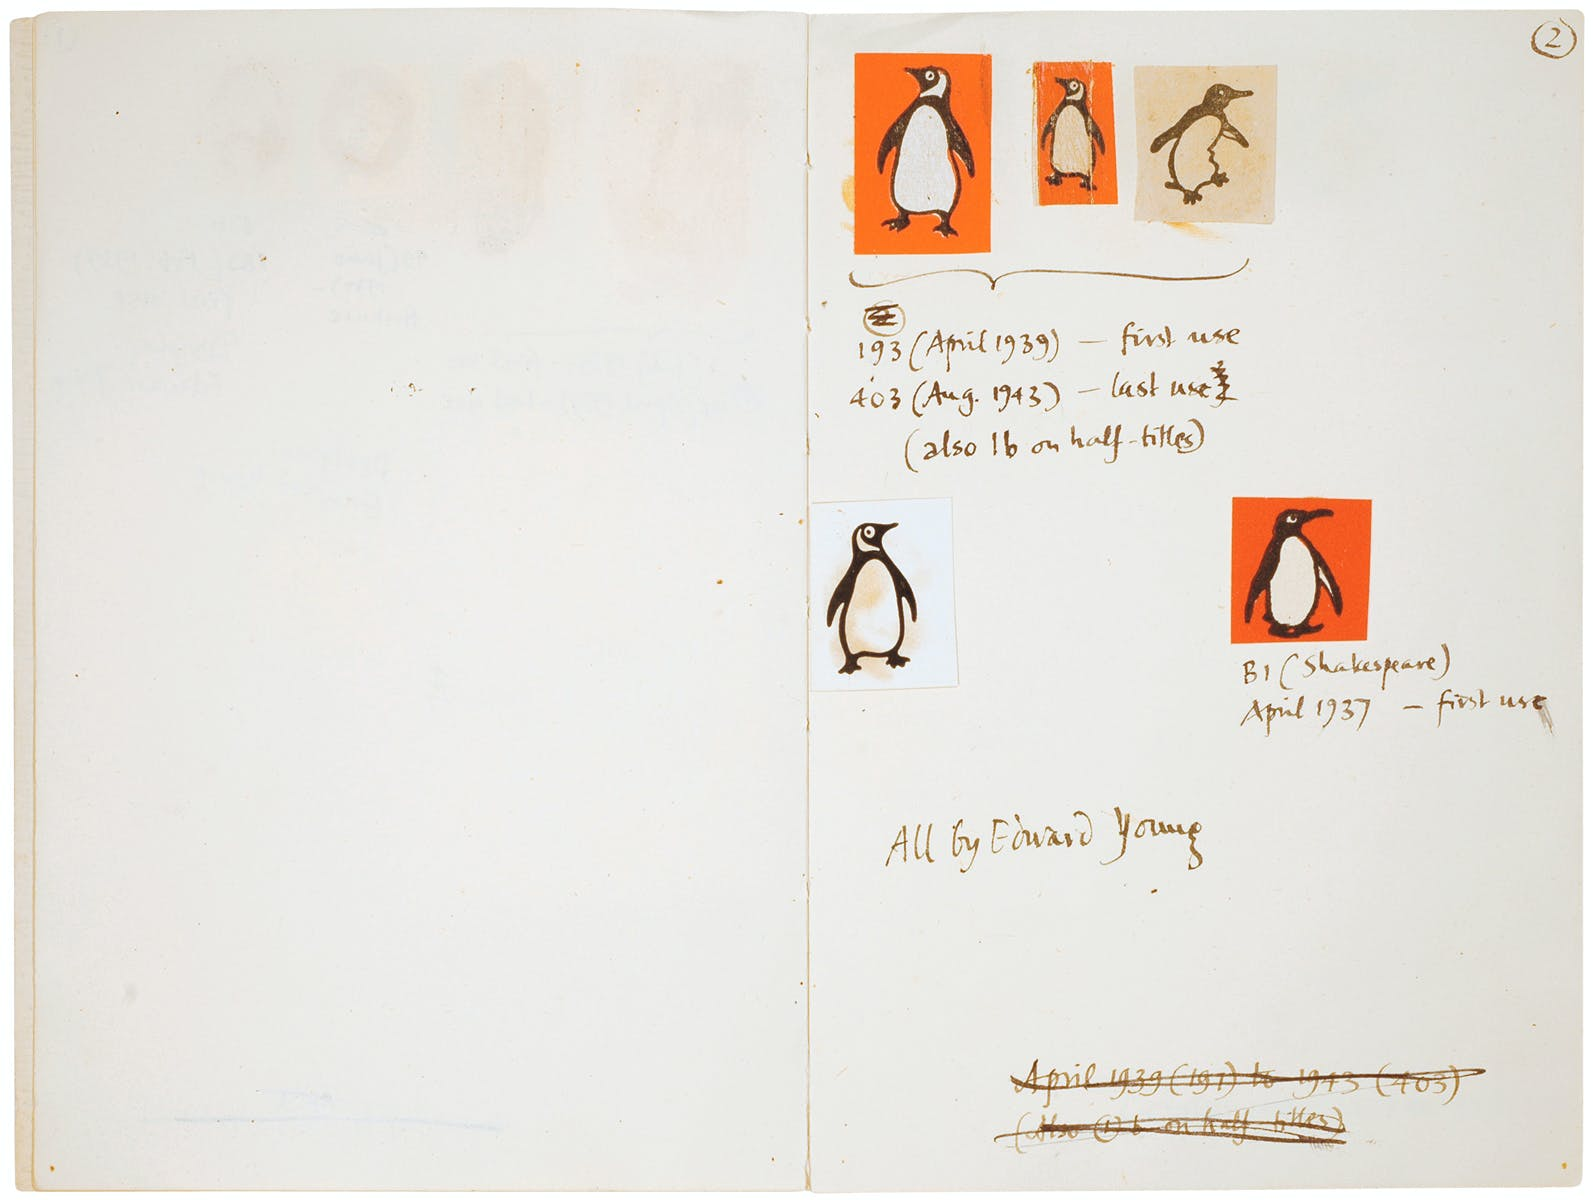 initial sketches of the penguin logo